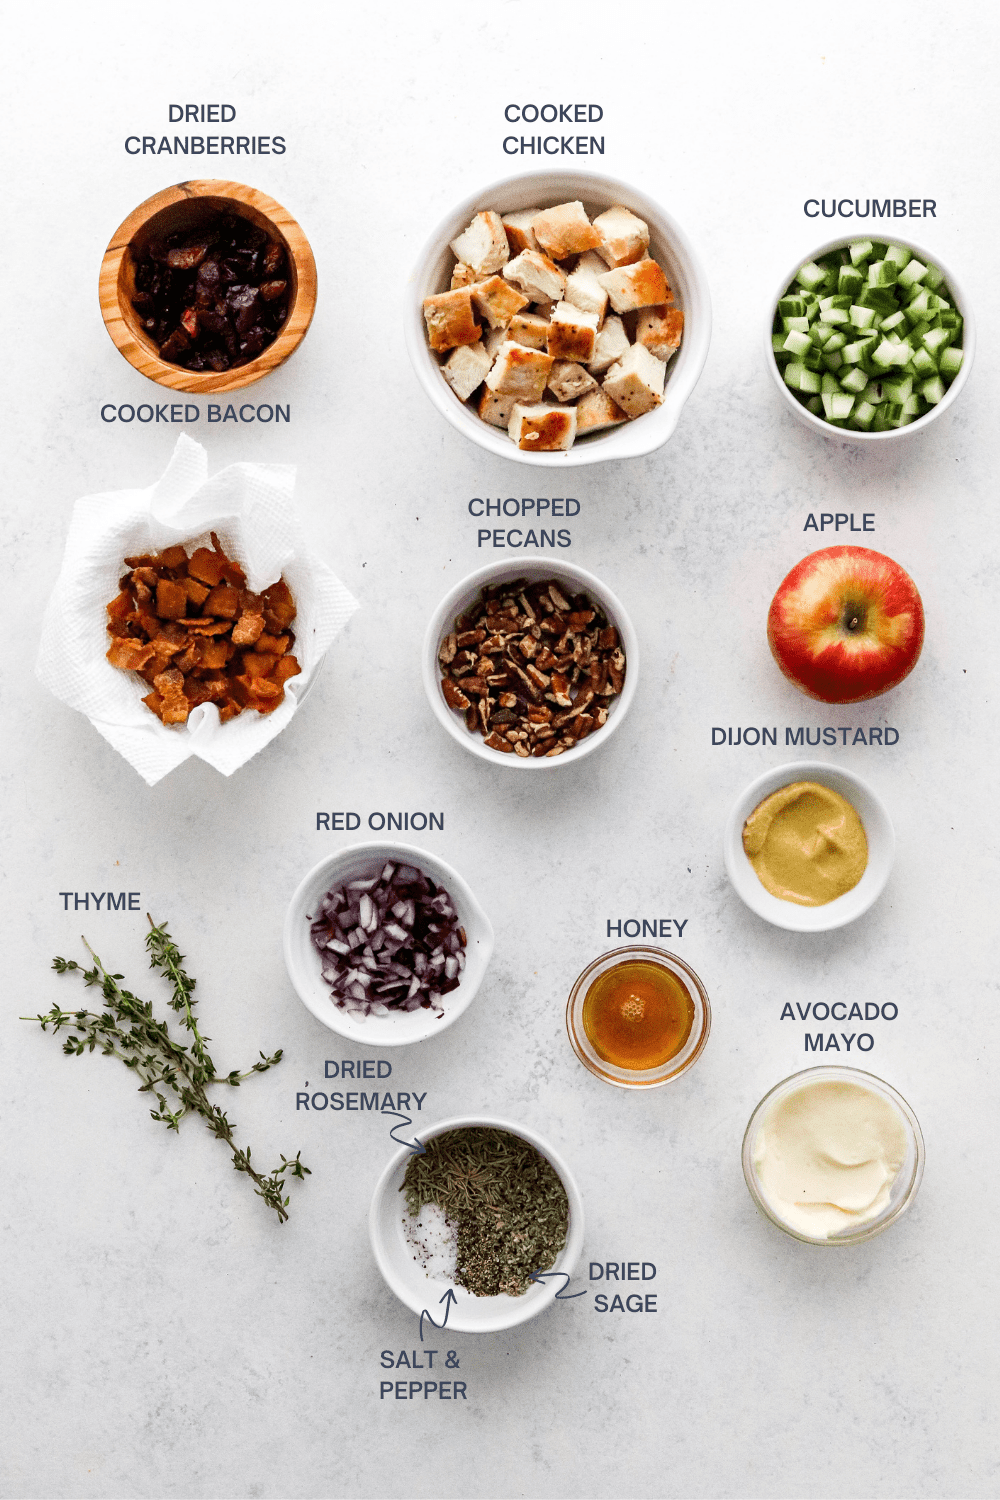 A bunch of round small bowls on a white surface filled with various ingredients like cranberries, cubed chicken, diced cucumber, chopped, cooked bacon, chopped pecans, an apple, chopped red onion, mustard, honey and a sprig of thyme with labels over each ingredient.